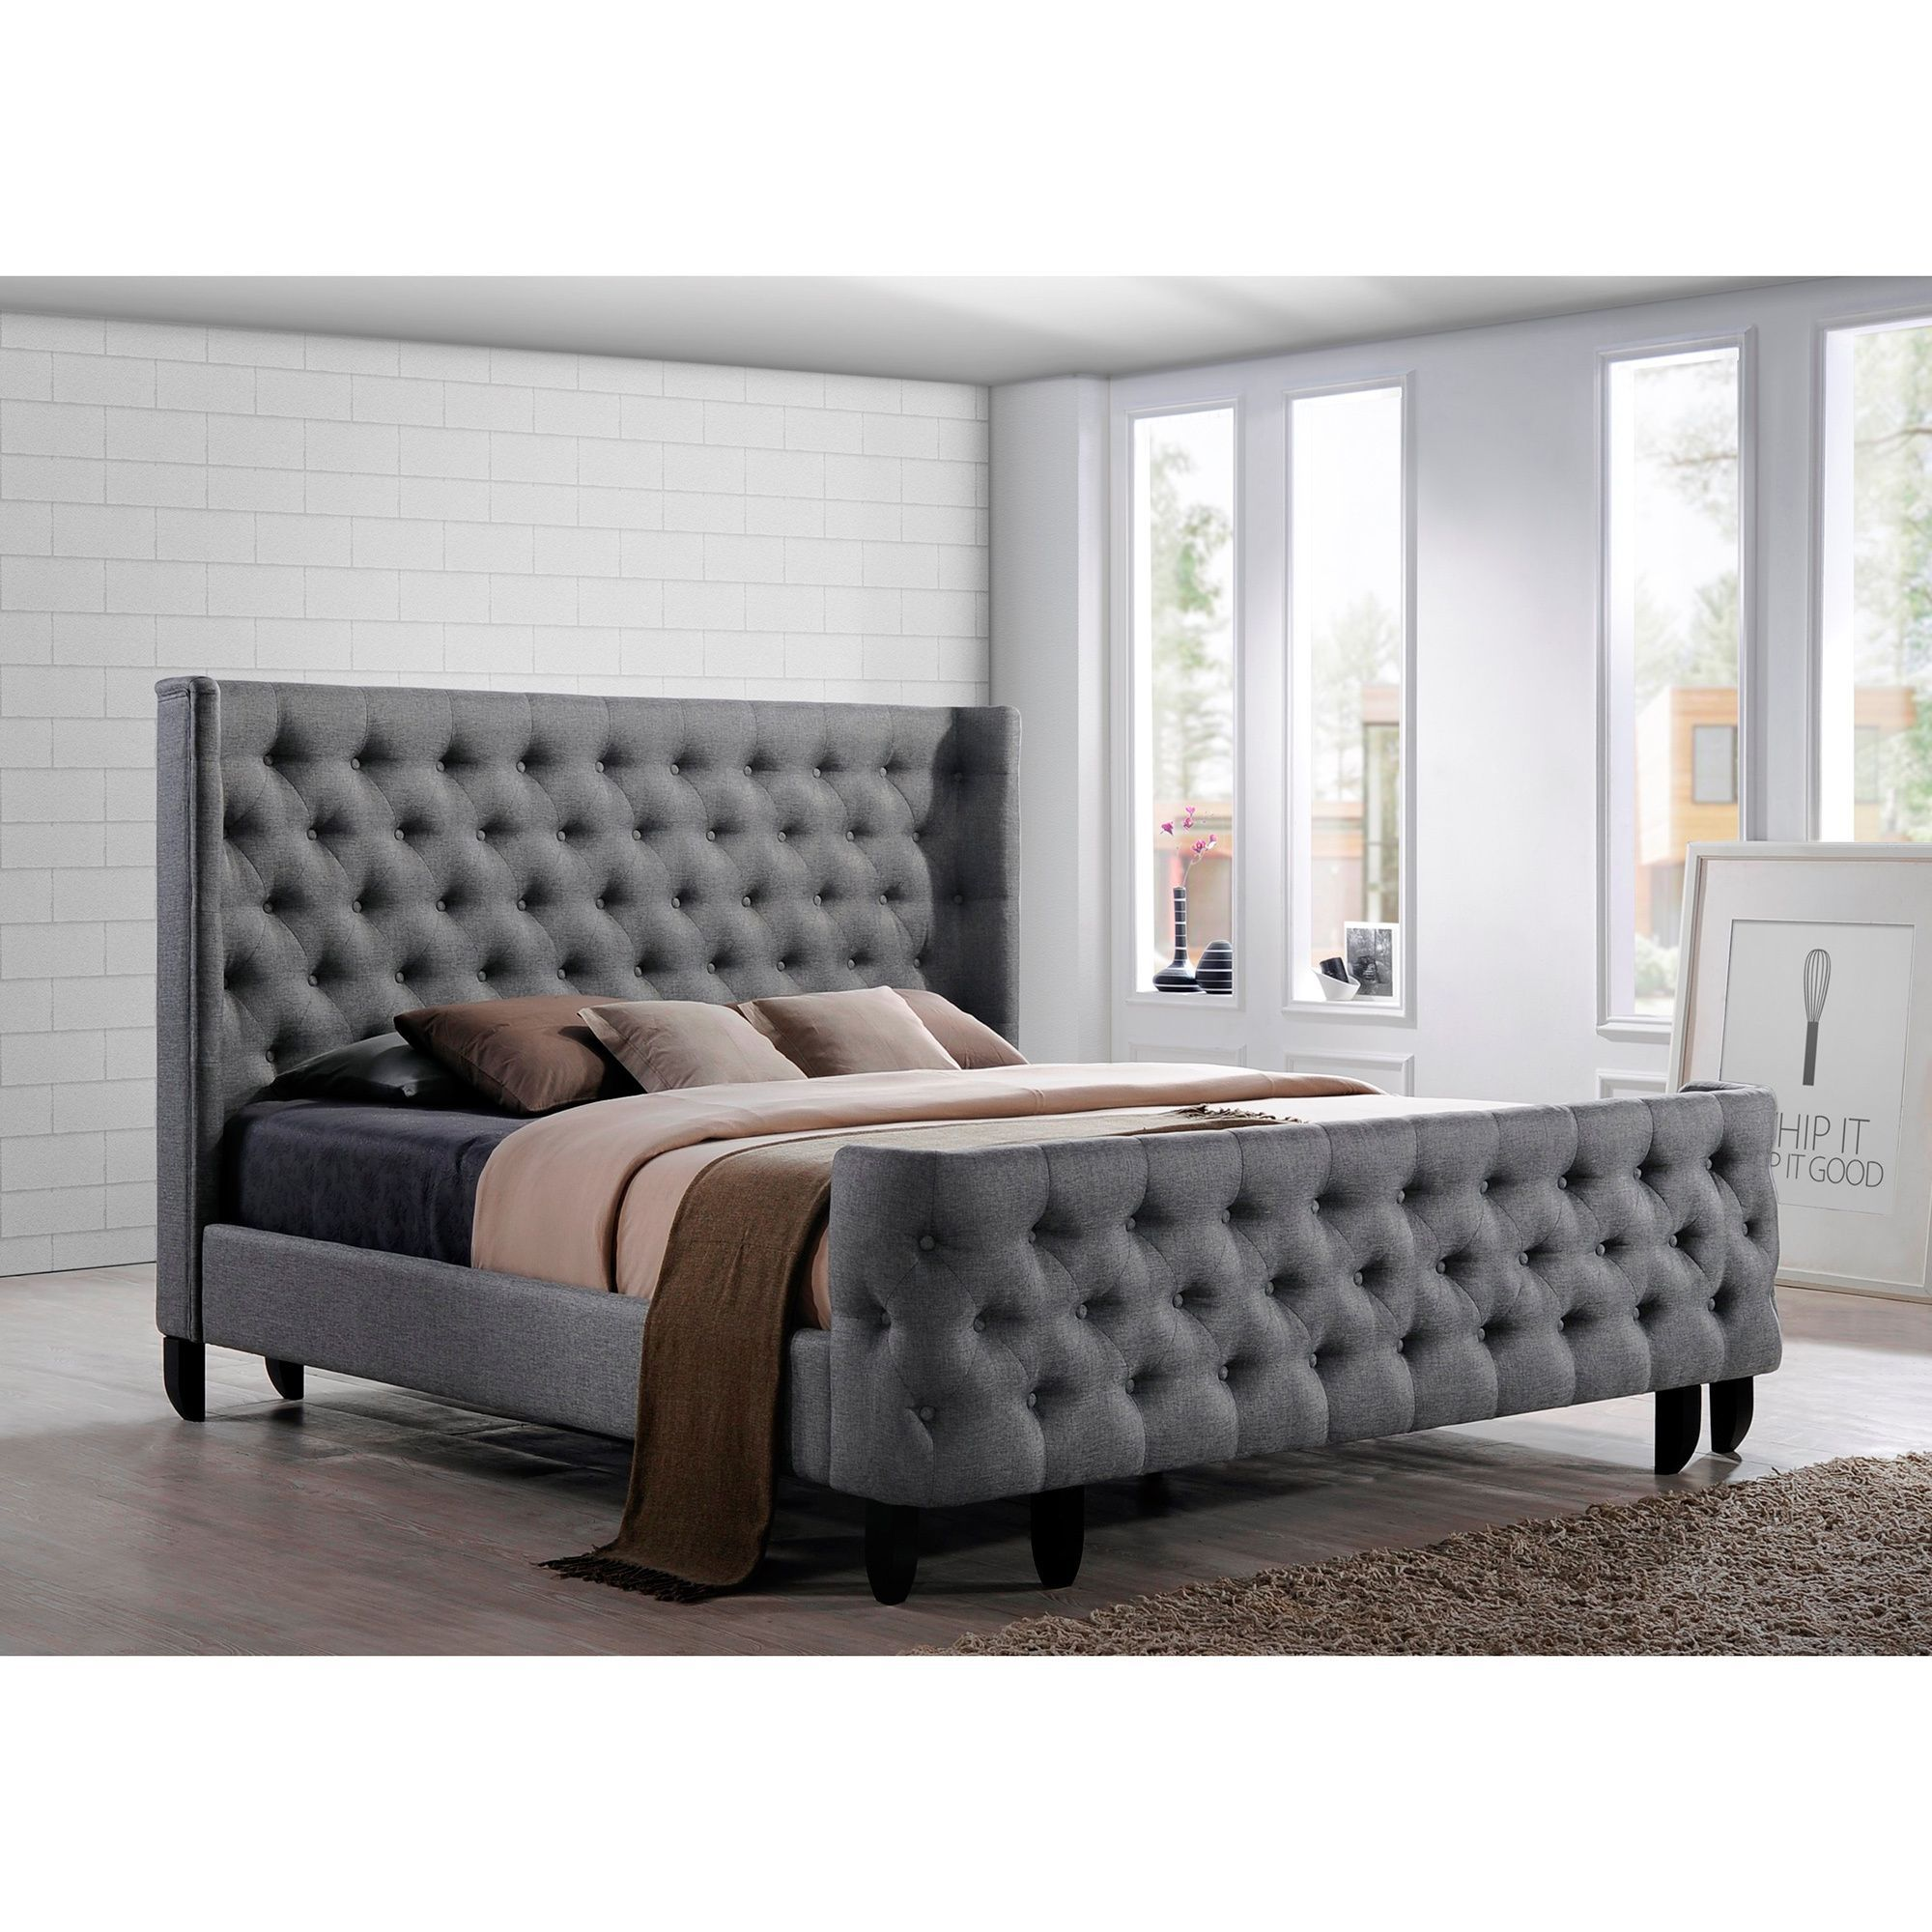 Wood Frame Gray Fabric Button Tufted Upholstered King Size Bedroom Headboard